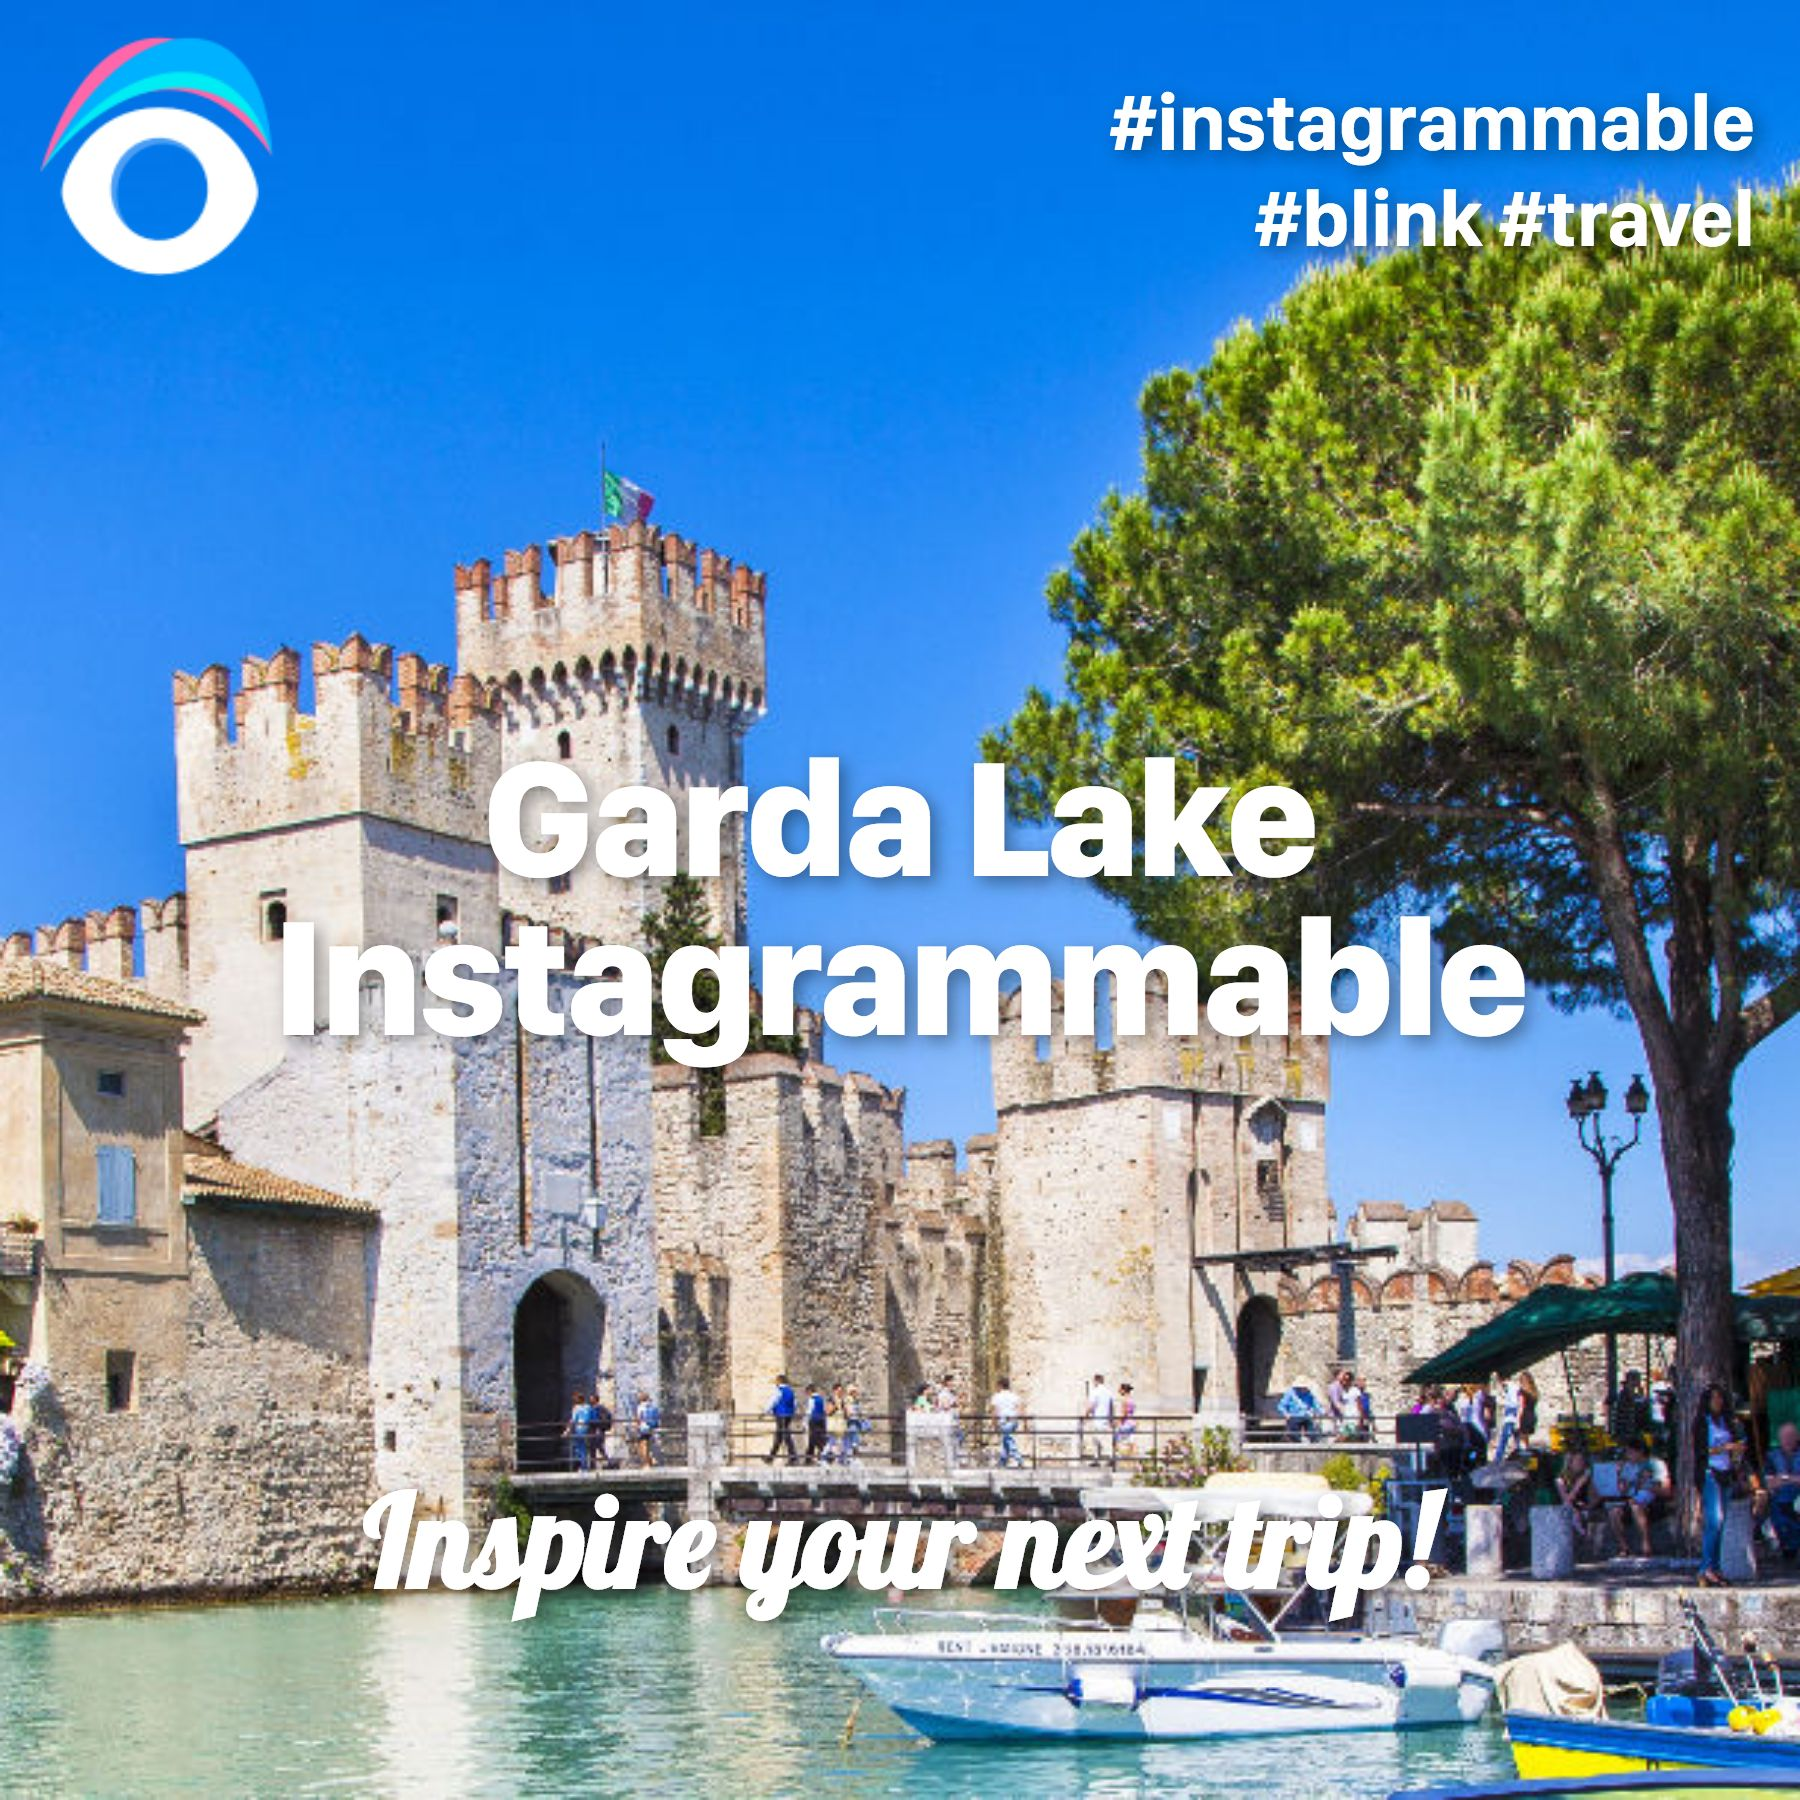 Garda Lake Instagrammable